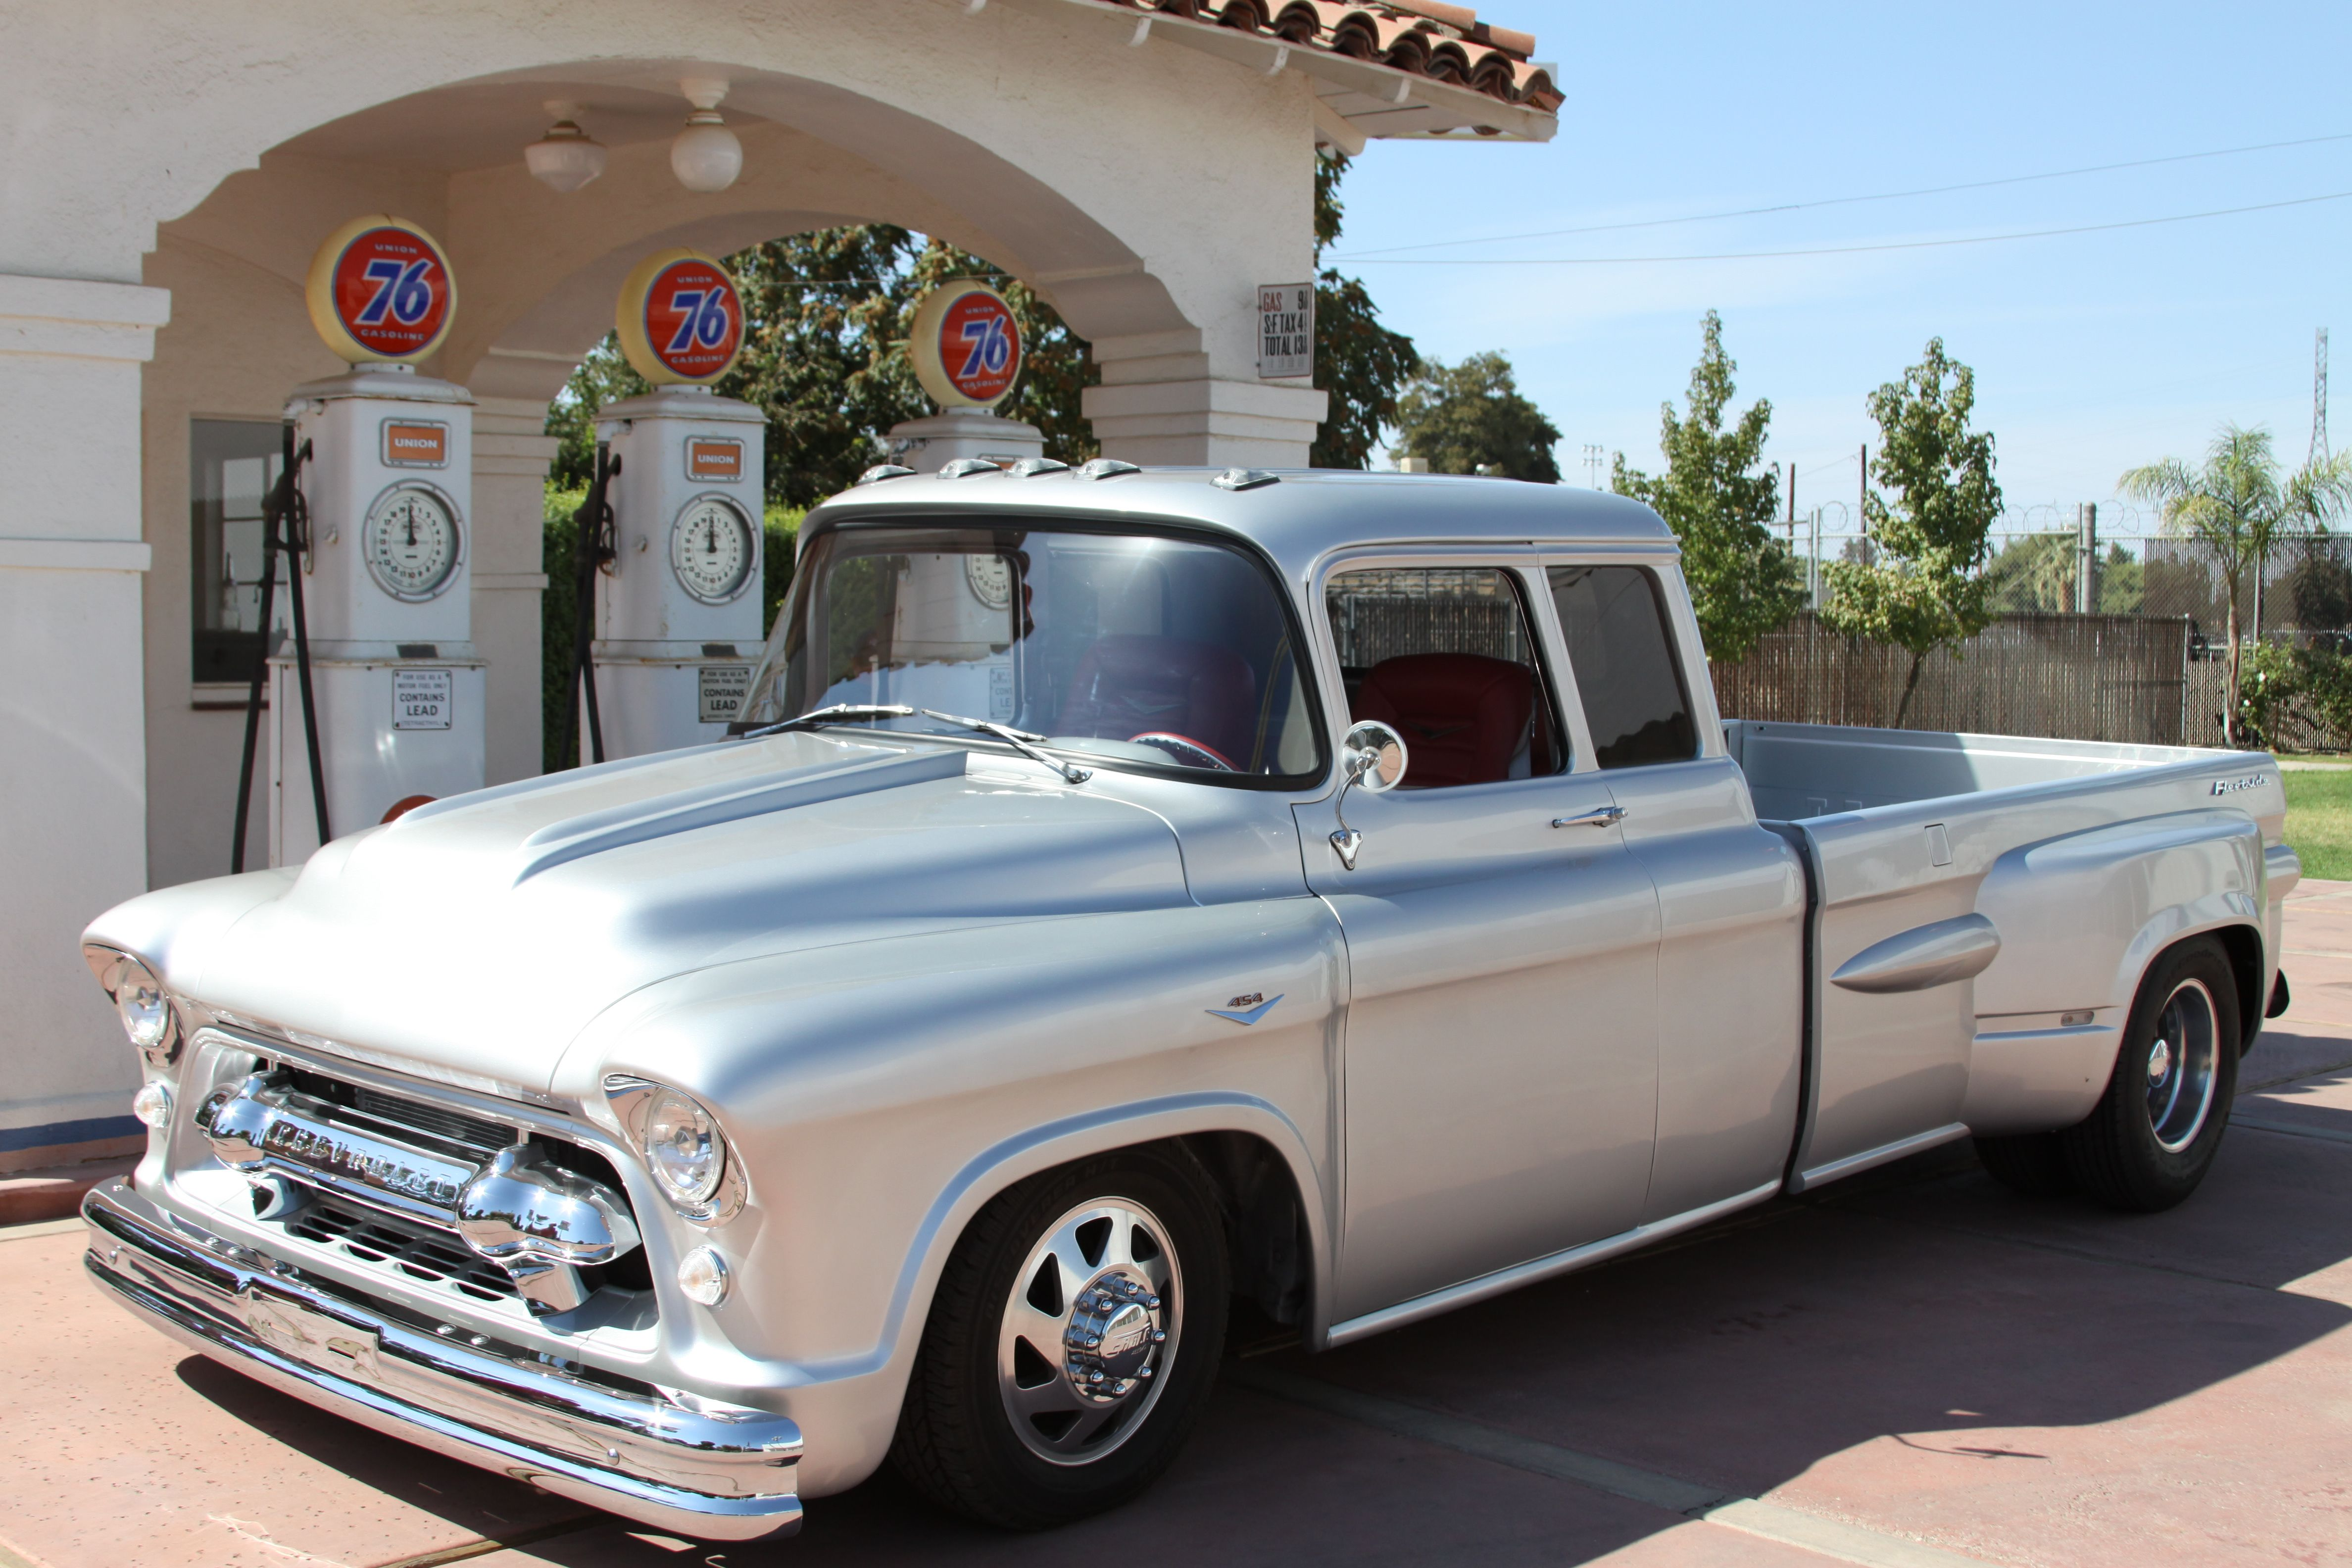 1957 chevy extended cab dually pickup truck boat horse or vintage trailer tow maintenance of old vehicles the material for new cogs casters gears pads